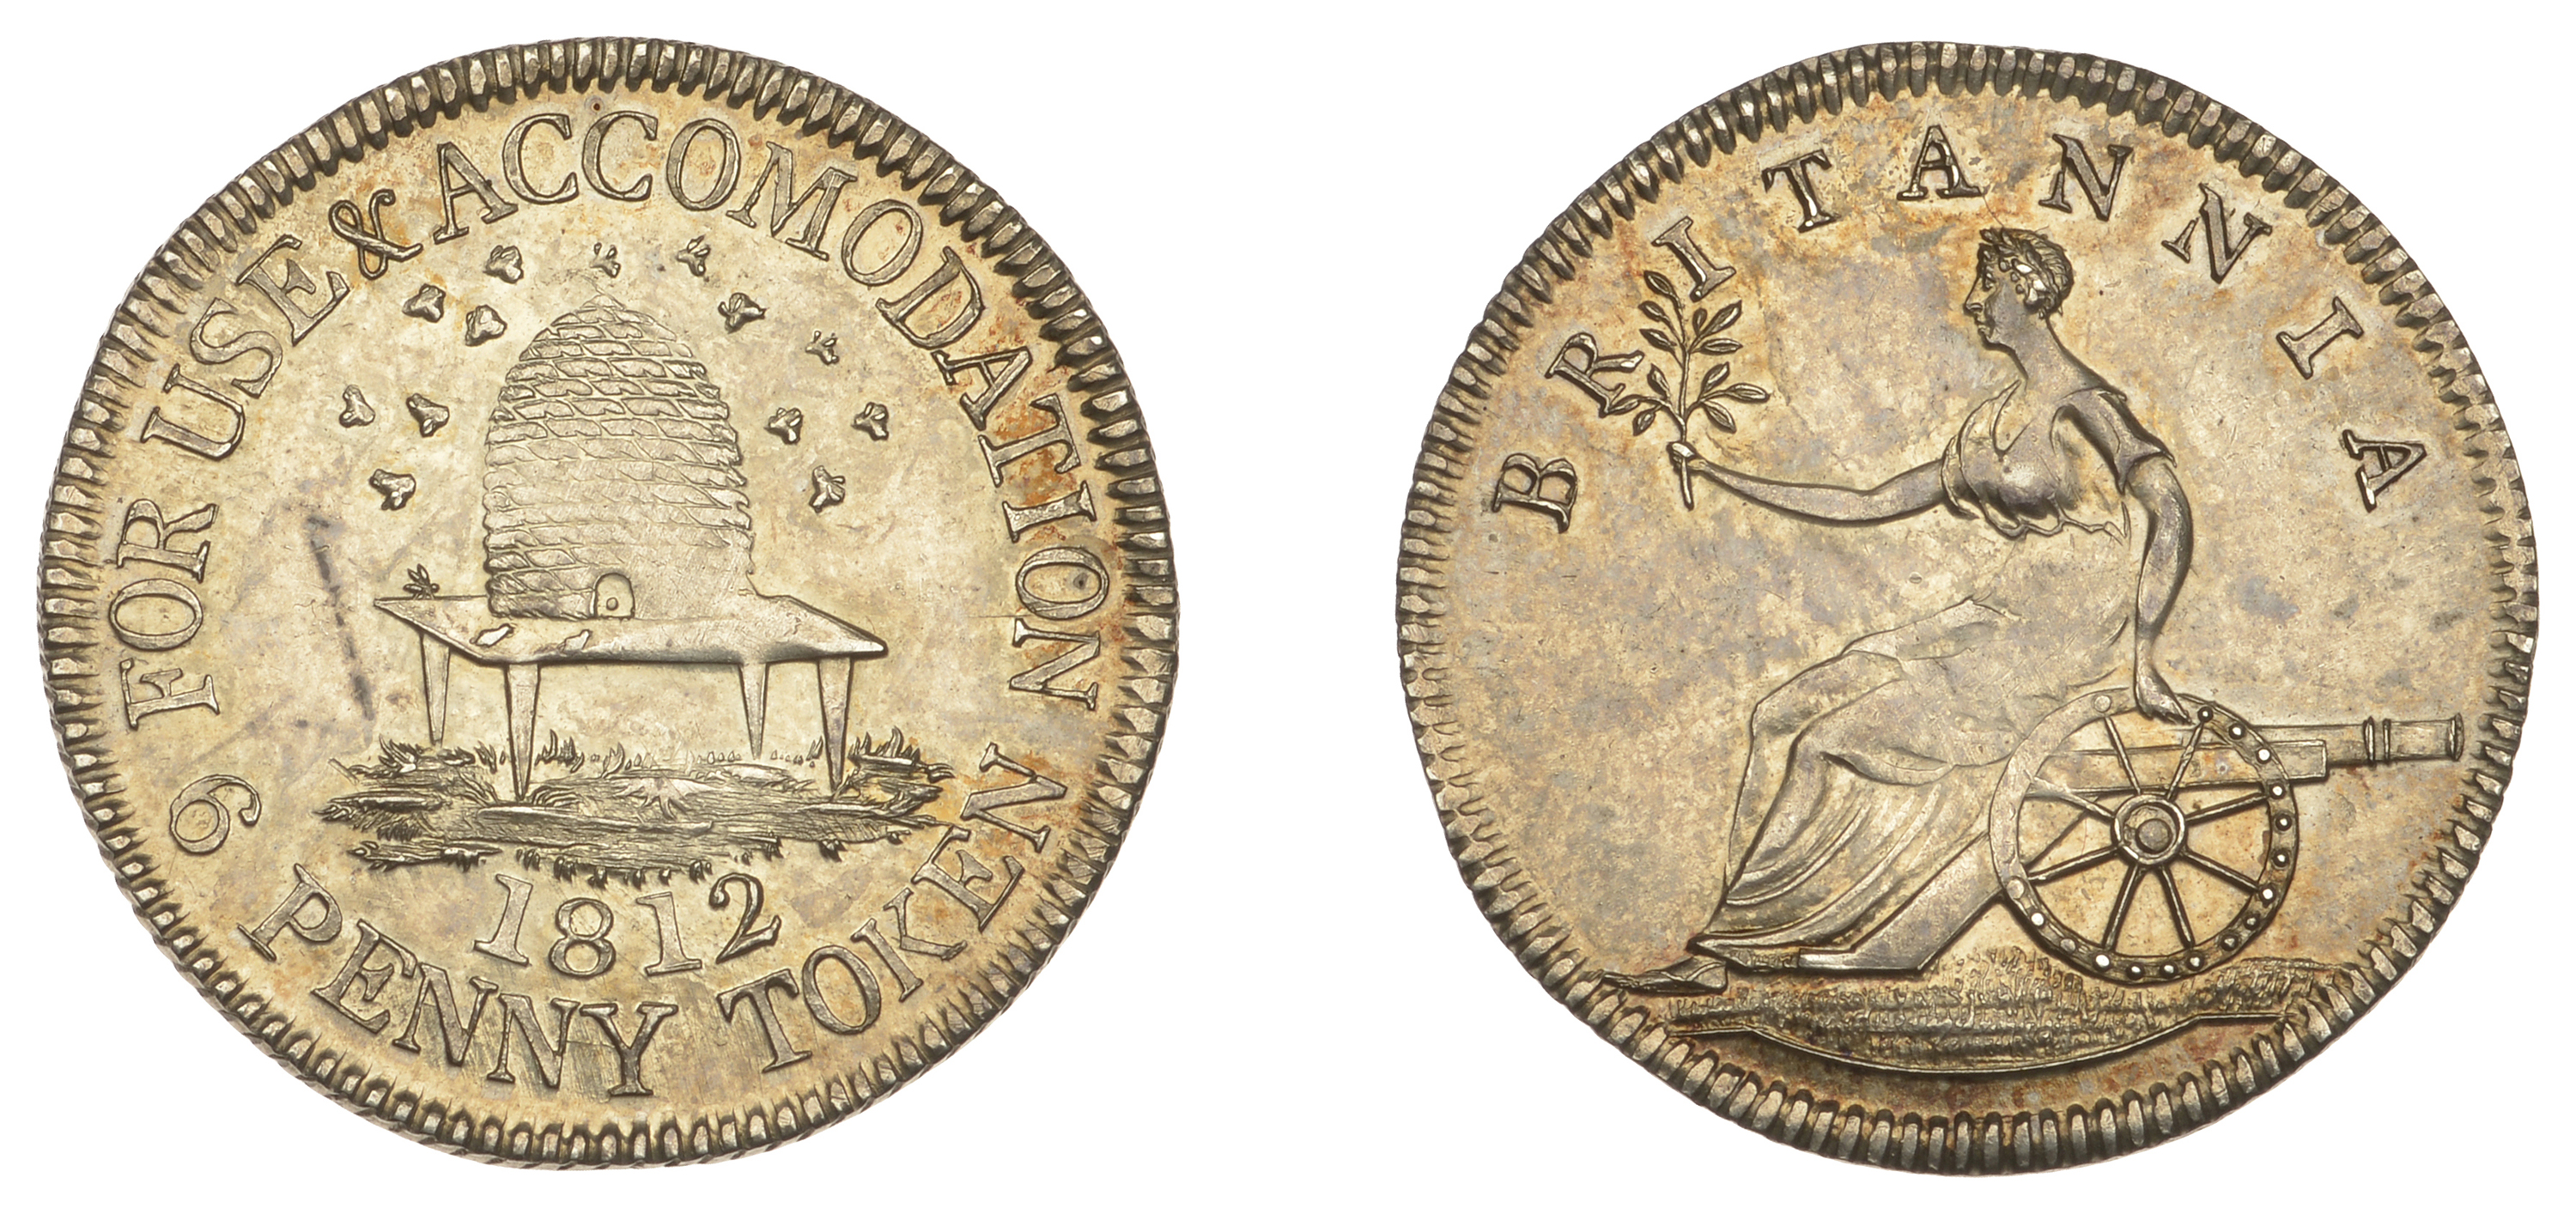 The Collection of 19th Century Tokens formed by John Akins (Part II)